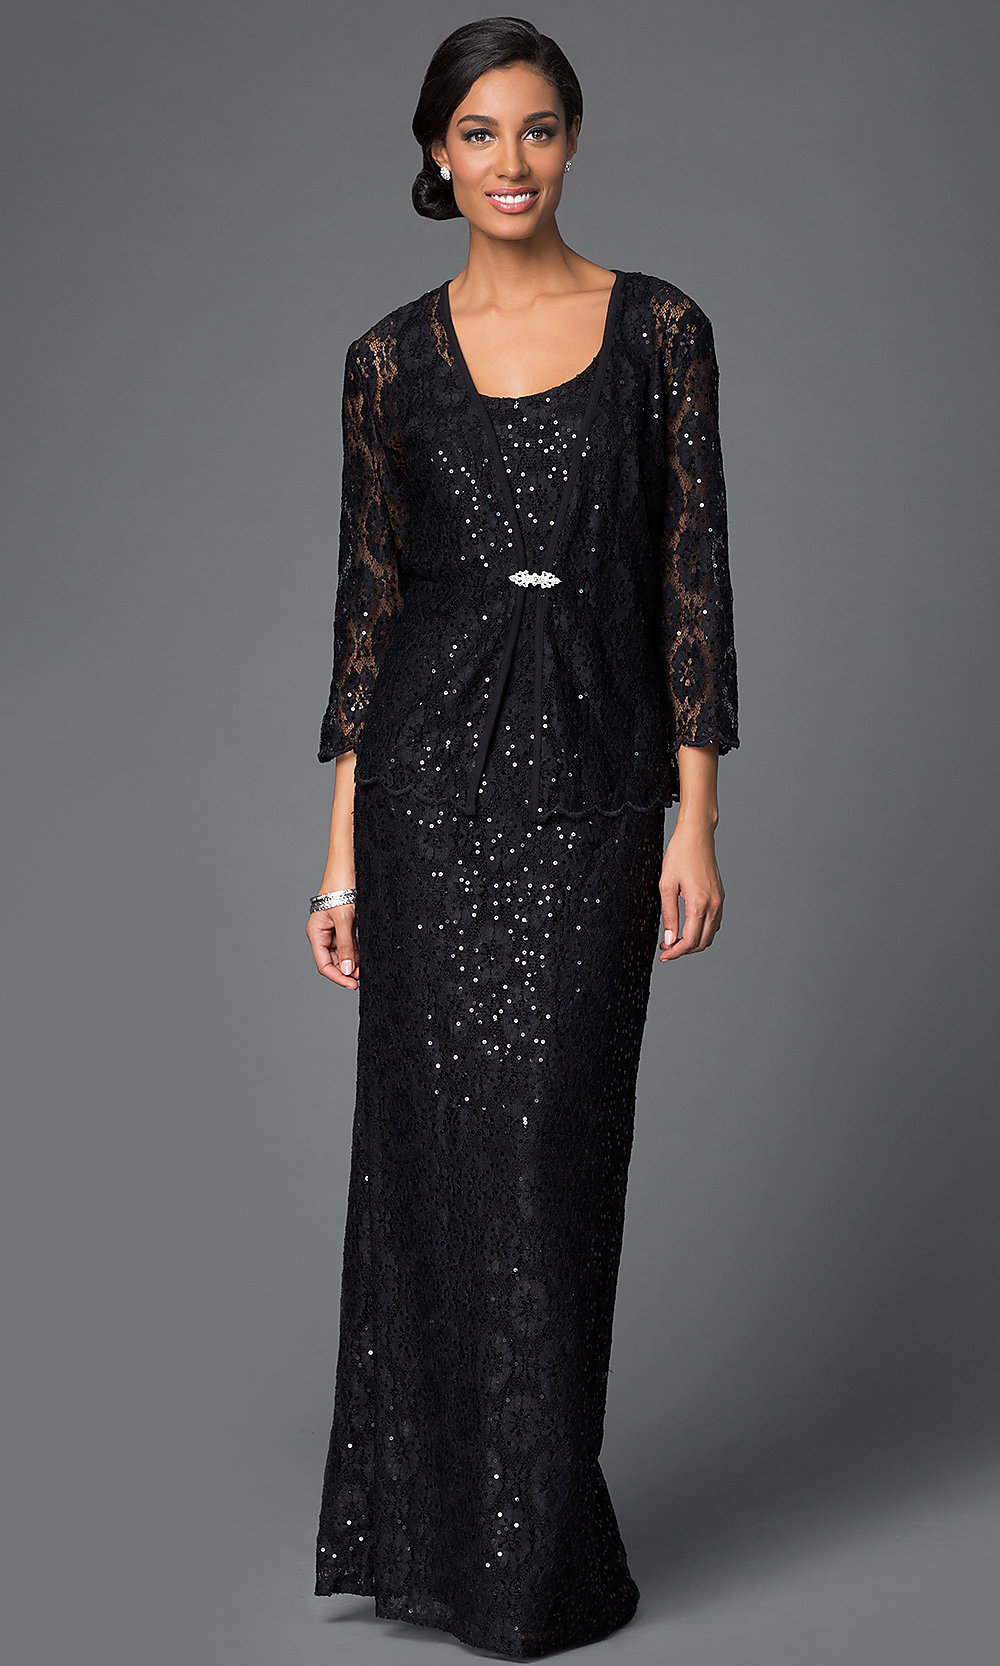 Long Sequined-Lace Dress with Jacket - PromGirl